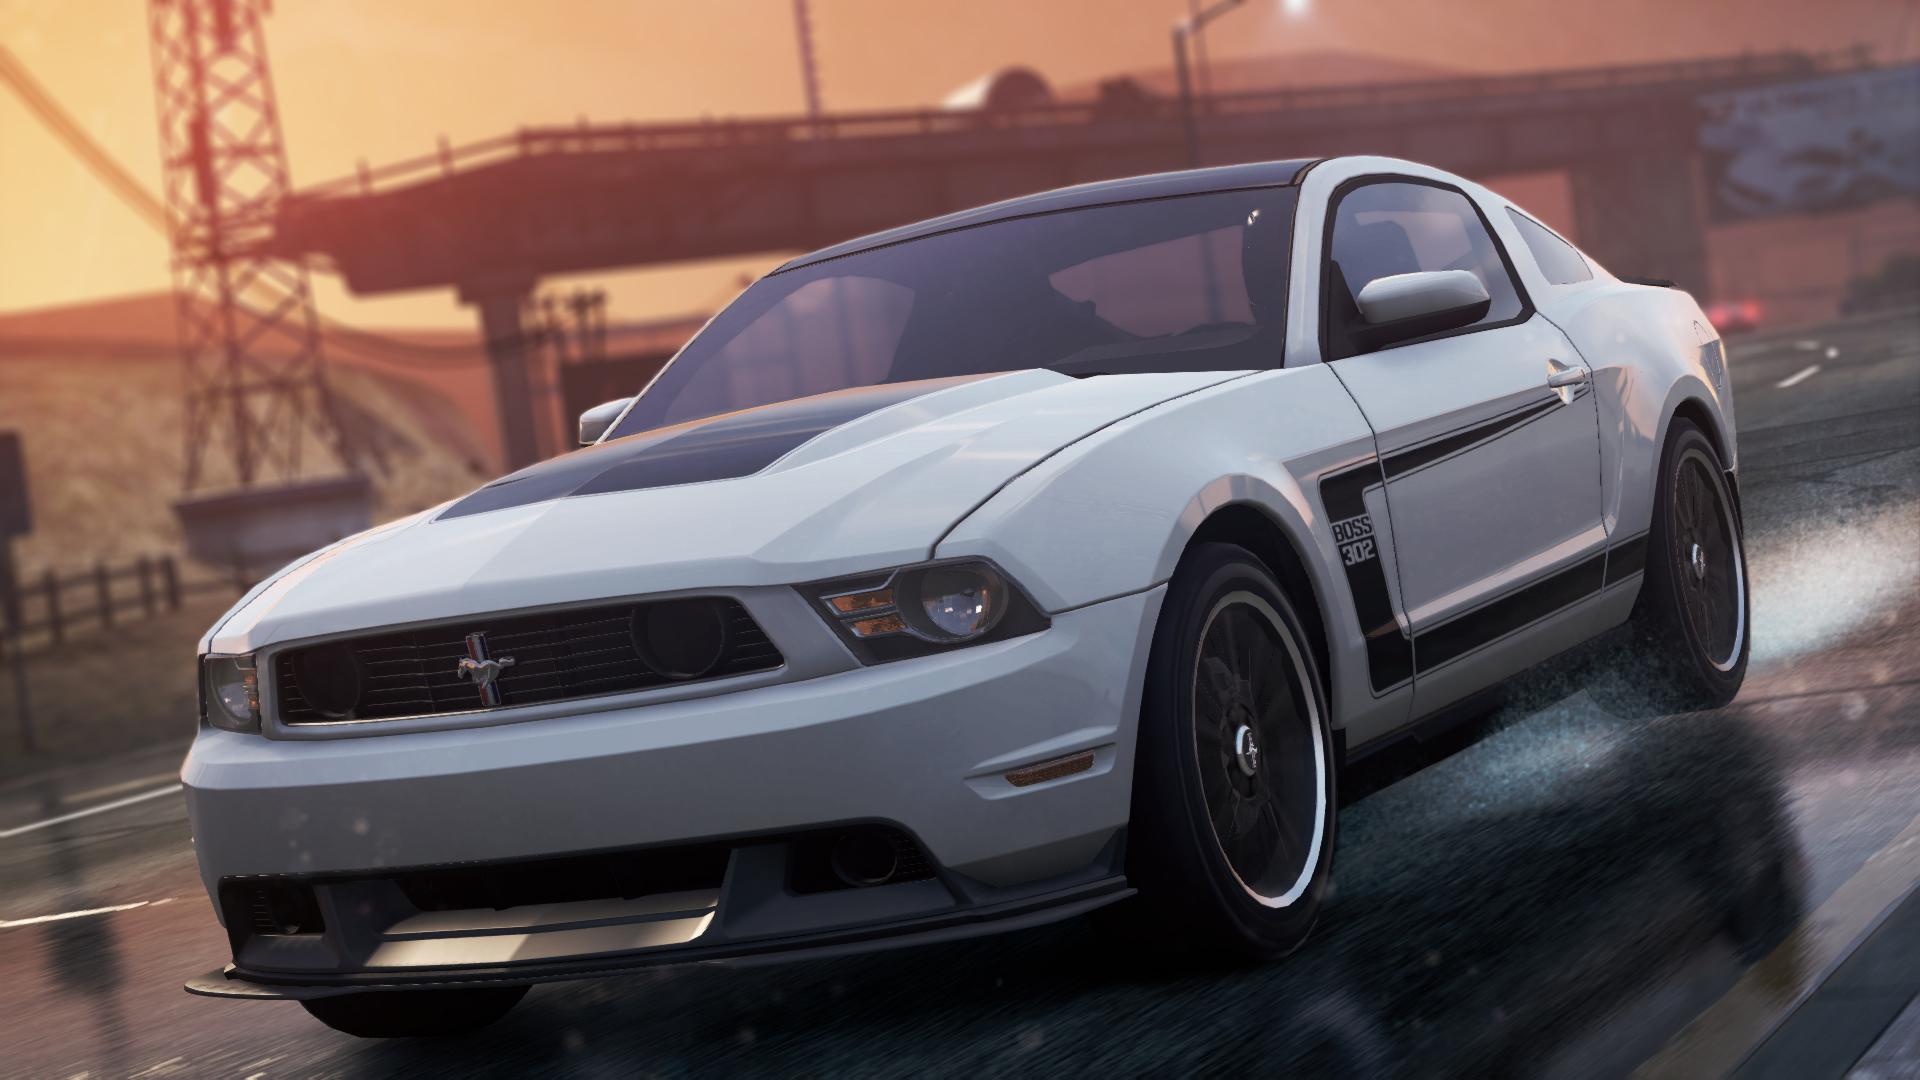 Ford Mustang Boss 302 (Gen. 5) | Need for Speed Wiki | FANDOM ...